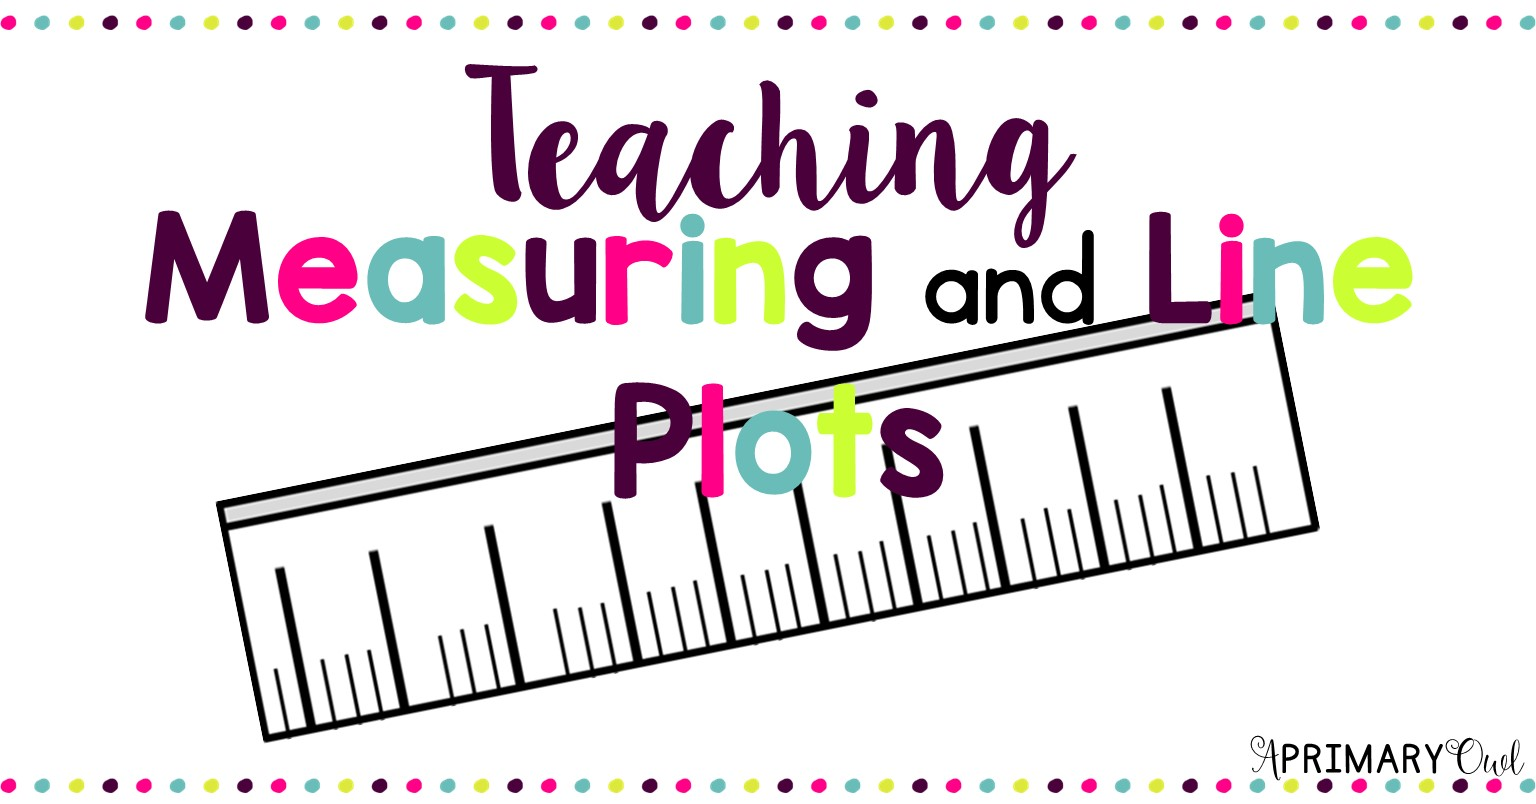 hight resolution of Teaching Measuring and Line Plots - A Primary Owl